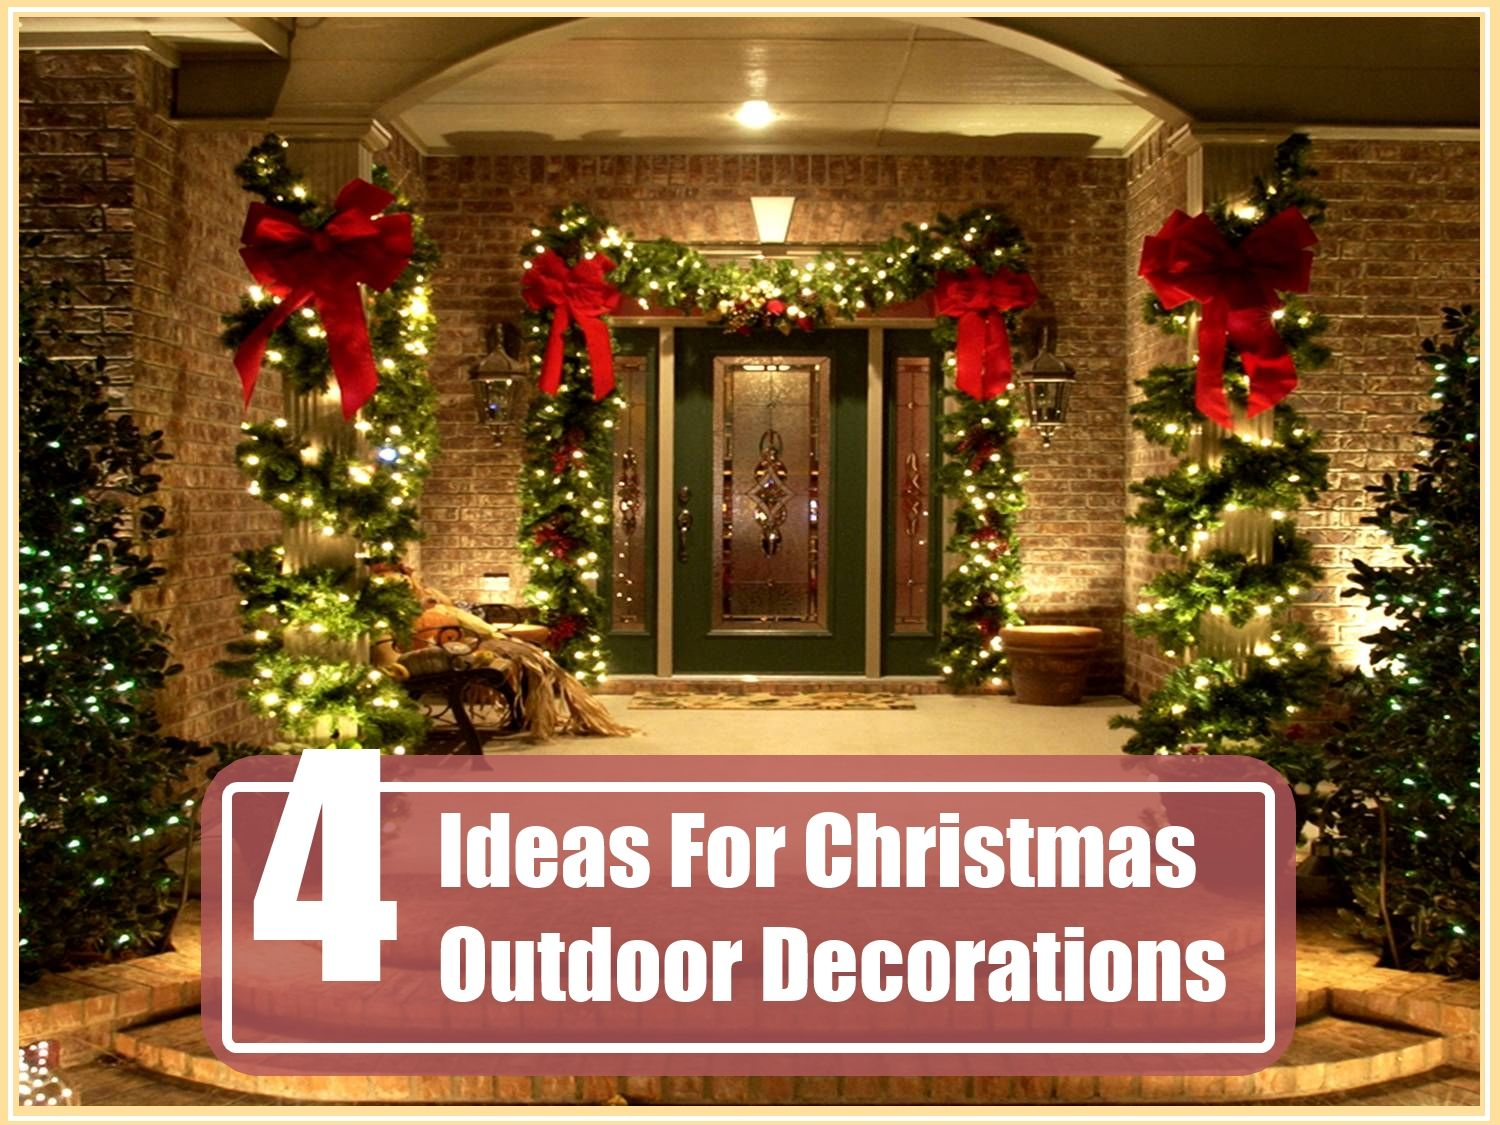 4 amazing ideas for christmas outdoor decorations - Classy Christmas Decorations Outdoor